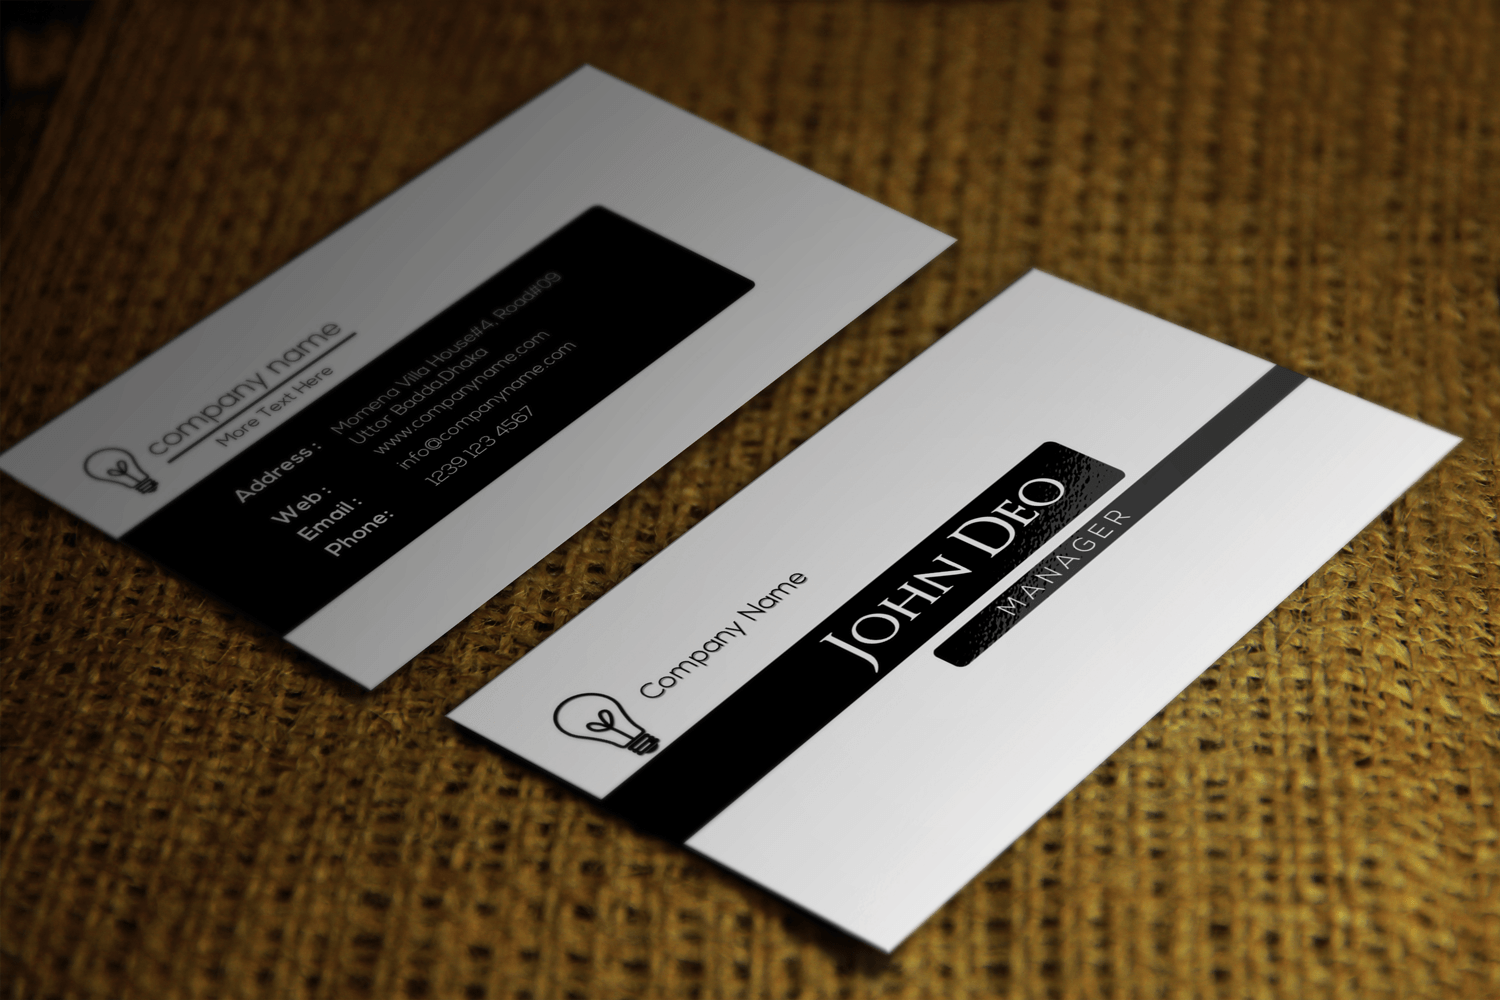 Black and white business cards templates free yeniscale black and white business cards templates free reheart Choice Image